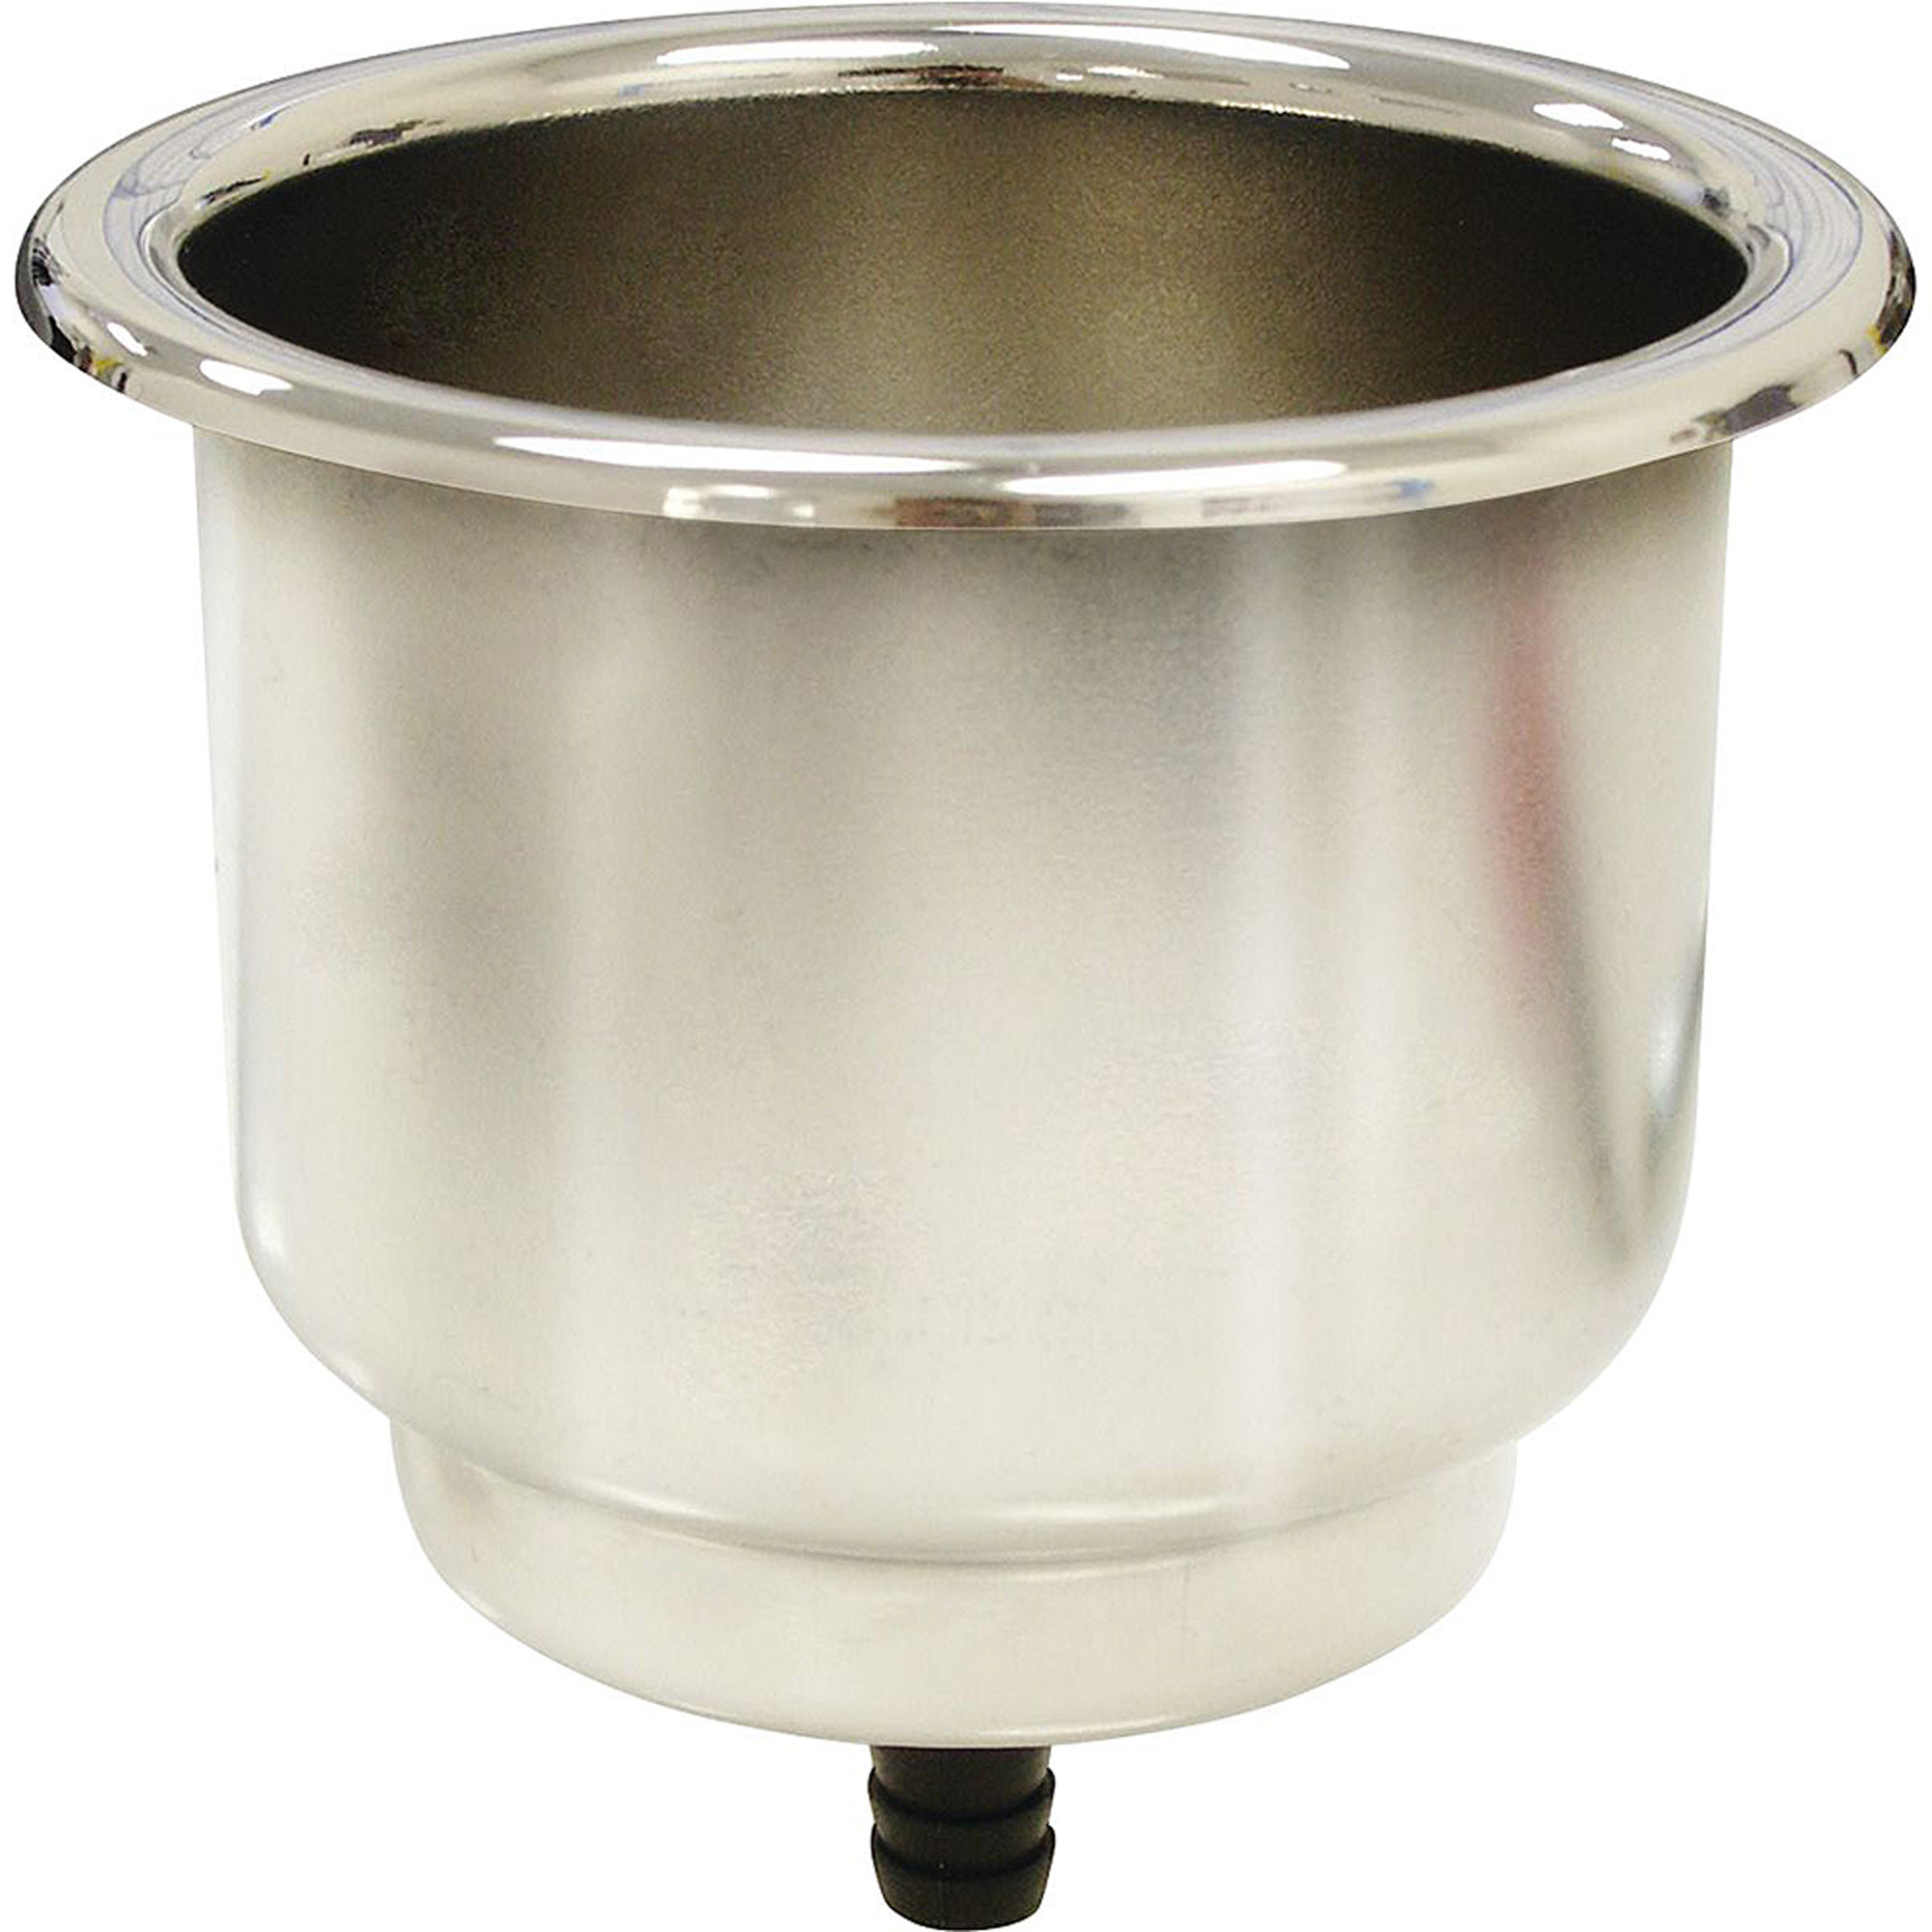 SeaSense Stainless Steel Recessed Cup Holder with Pad, Gasket and Barb